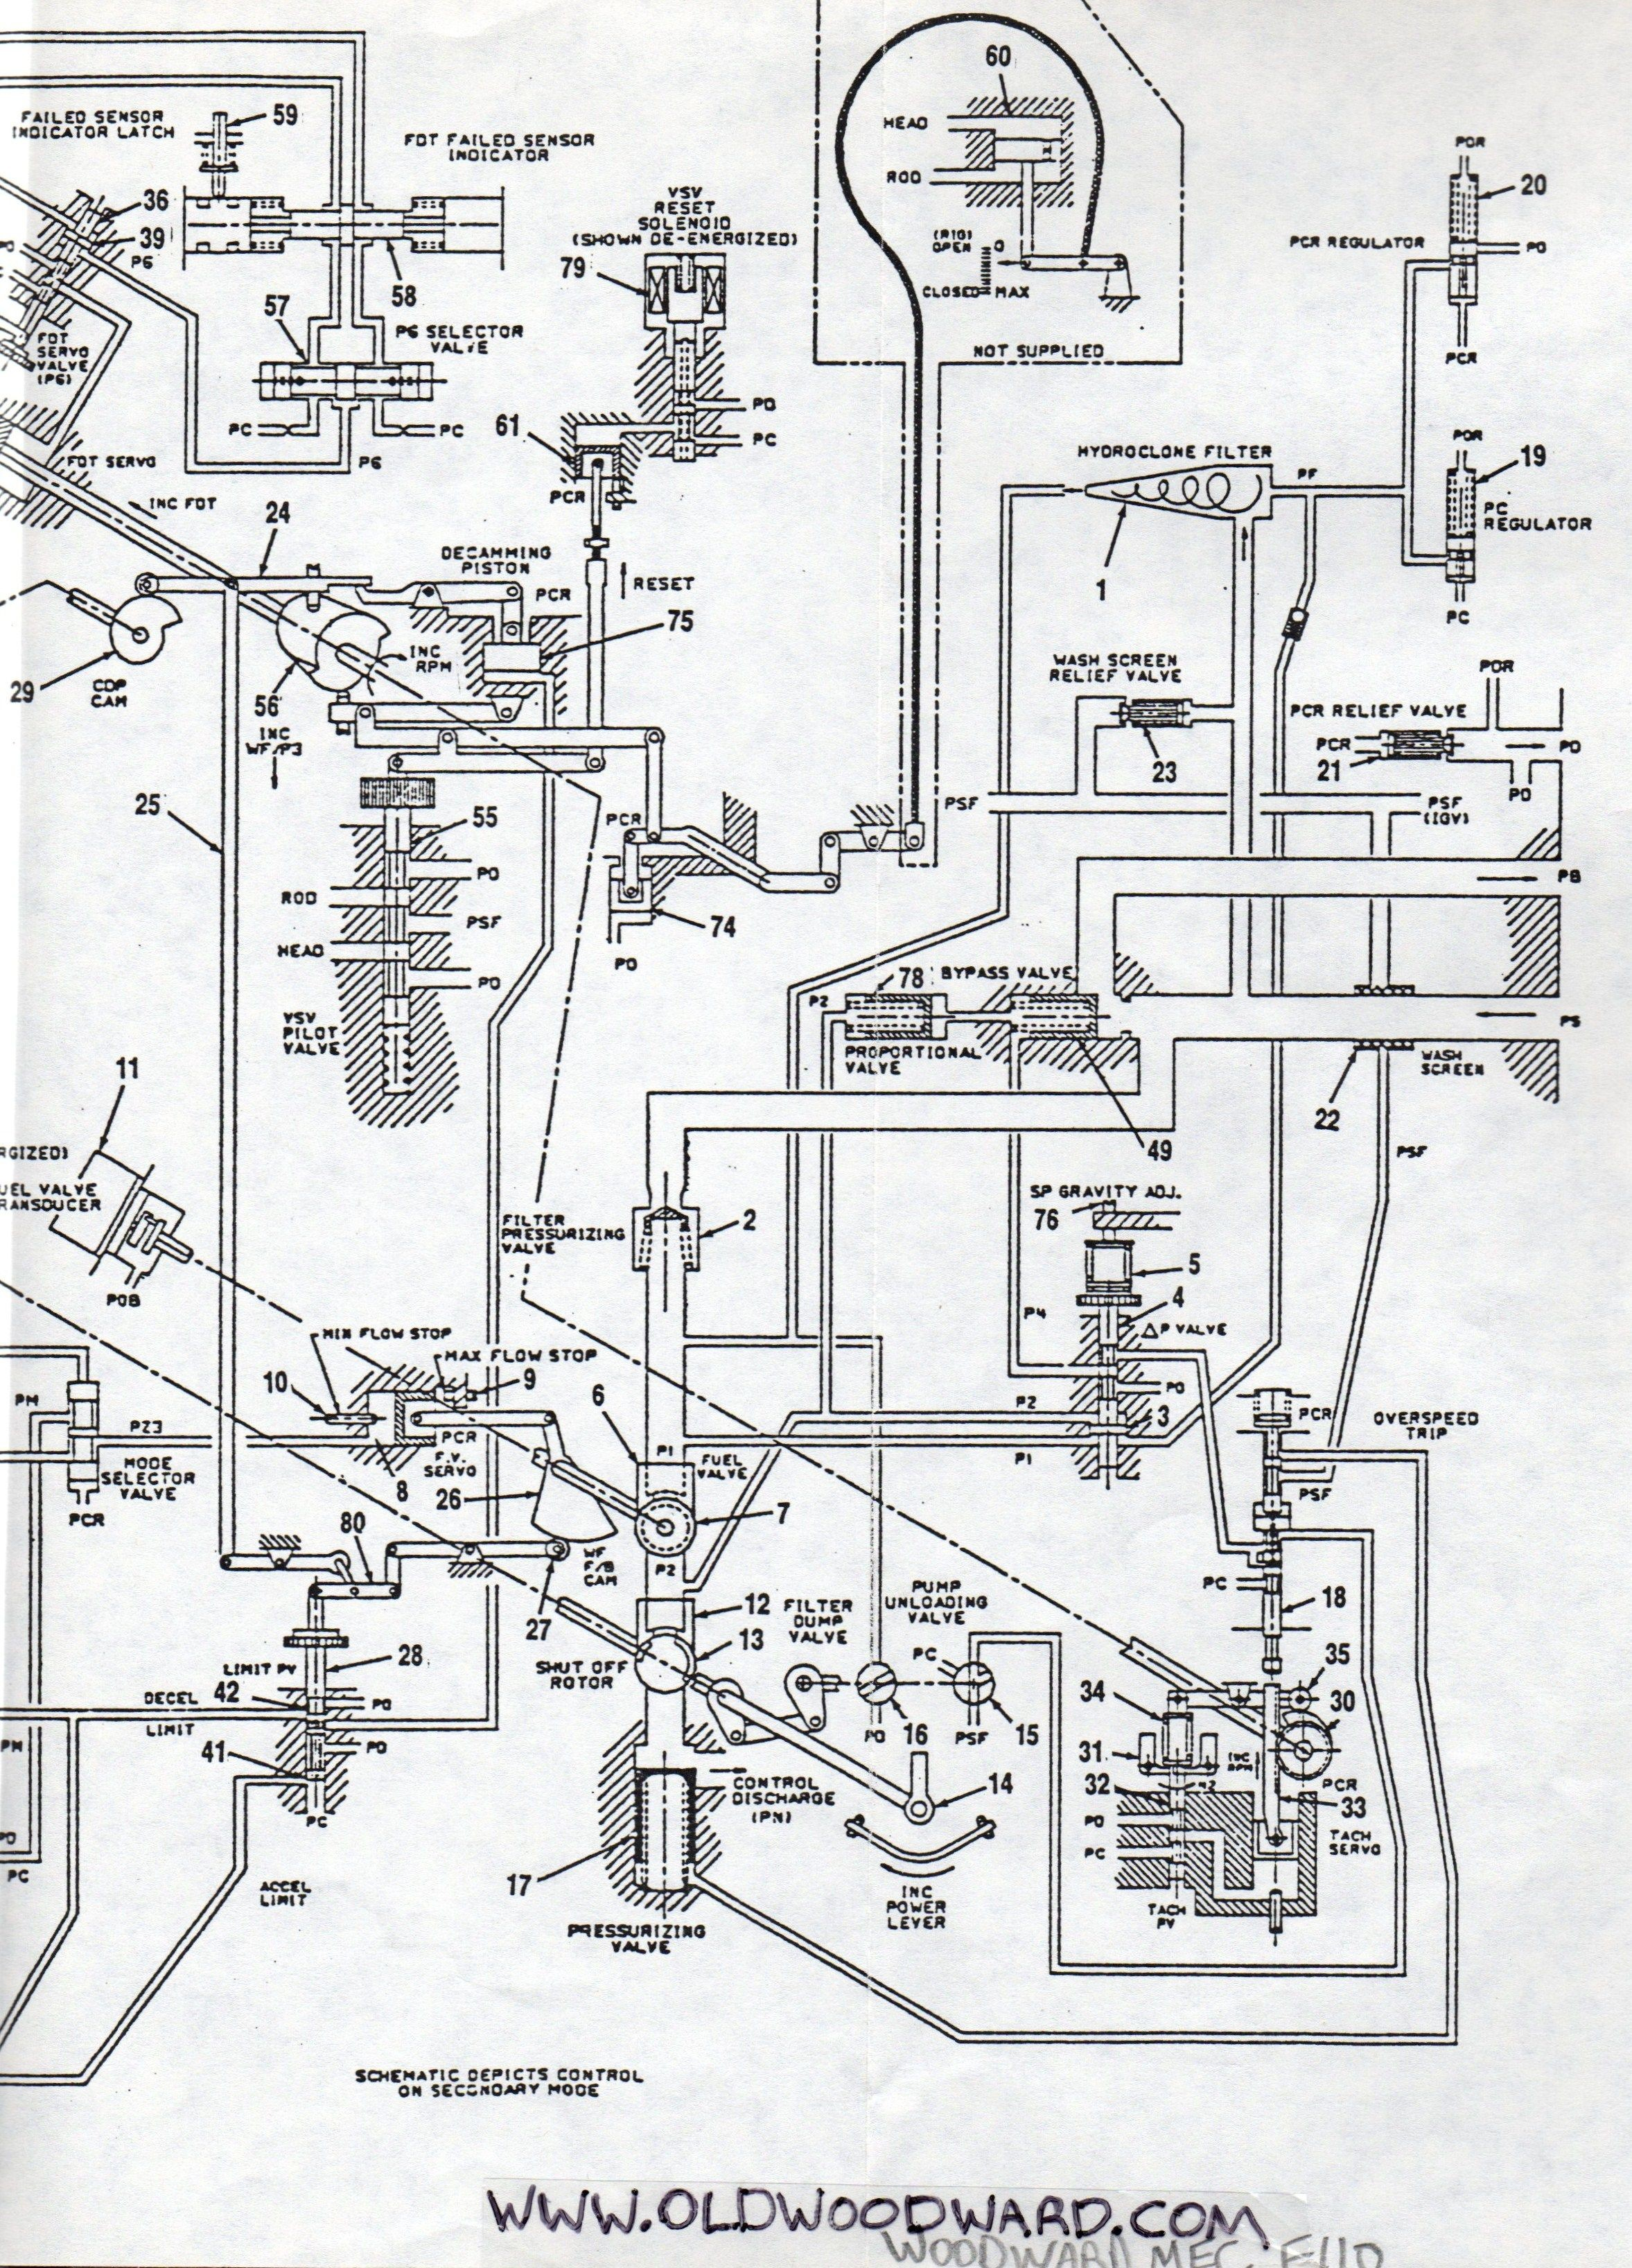 Woodward Governor pany s control system schematic for the General Electric F110 series jet engine